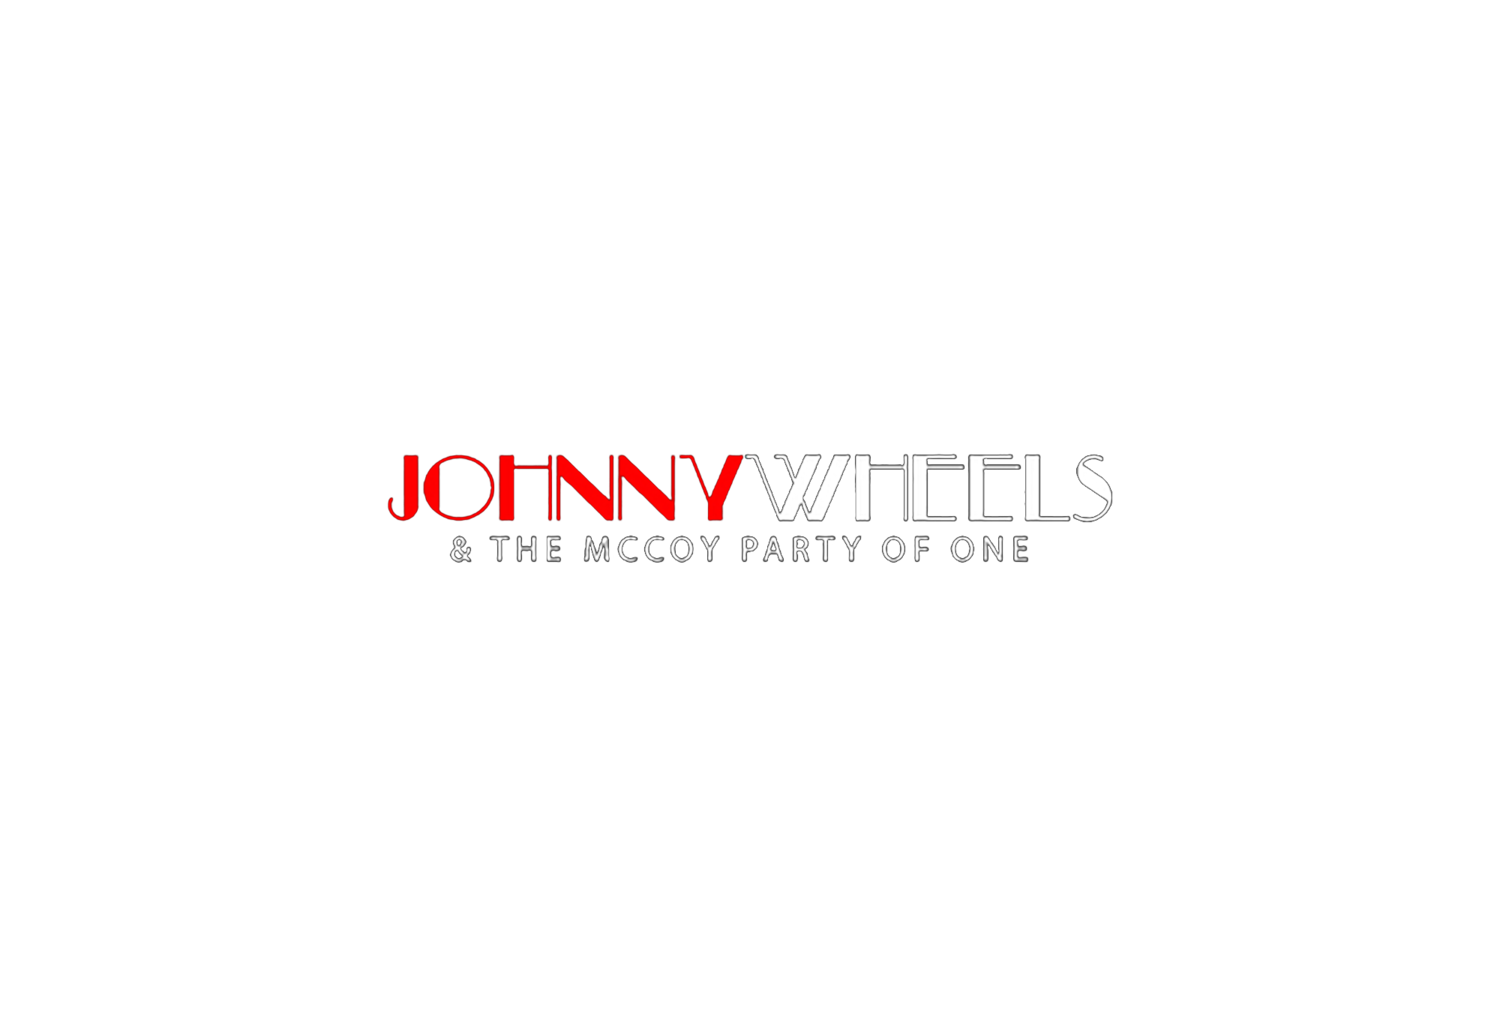 Johnny Wheels